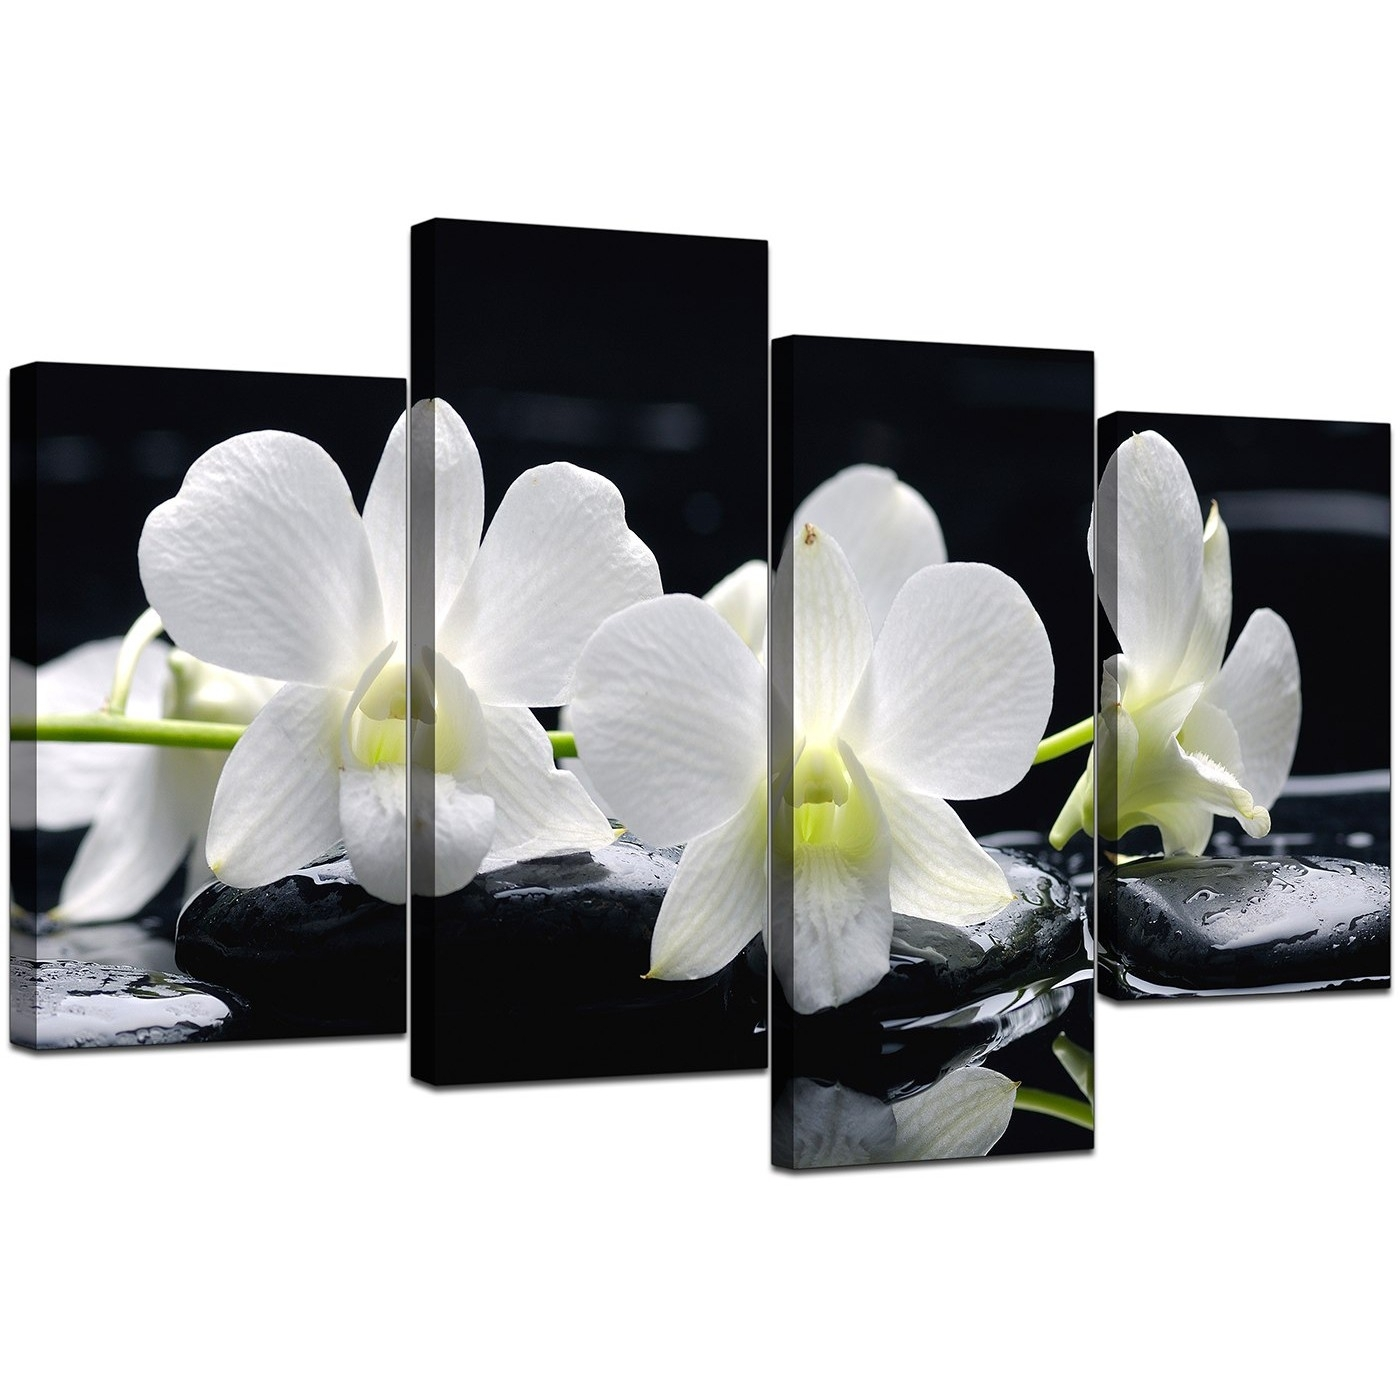 Canvas Wall Art Of Orchids In Black & White For Your Living Room For Recent Orchid Canvas Wall Art (View 10 of 15)